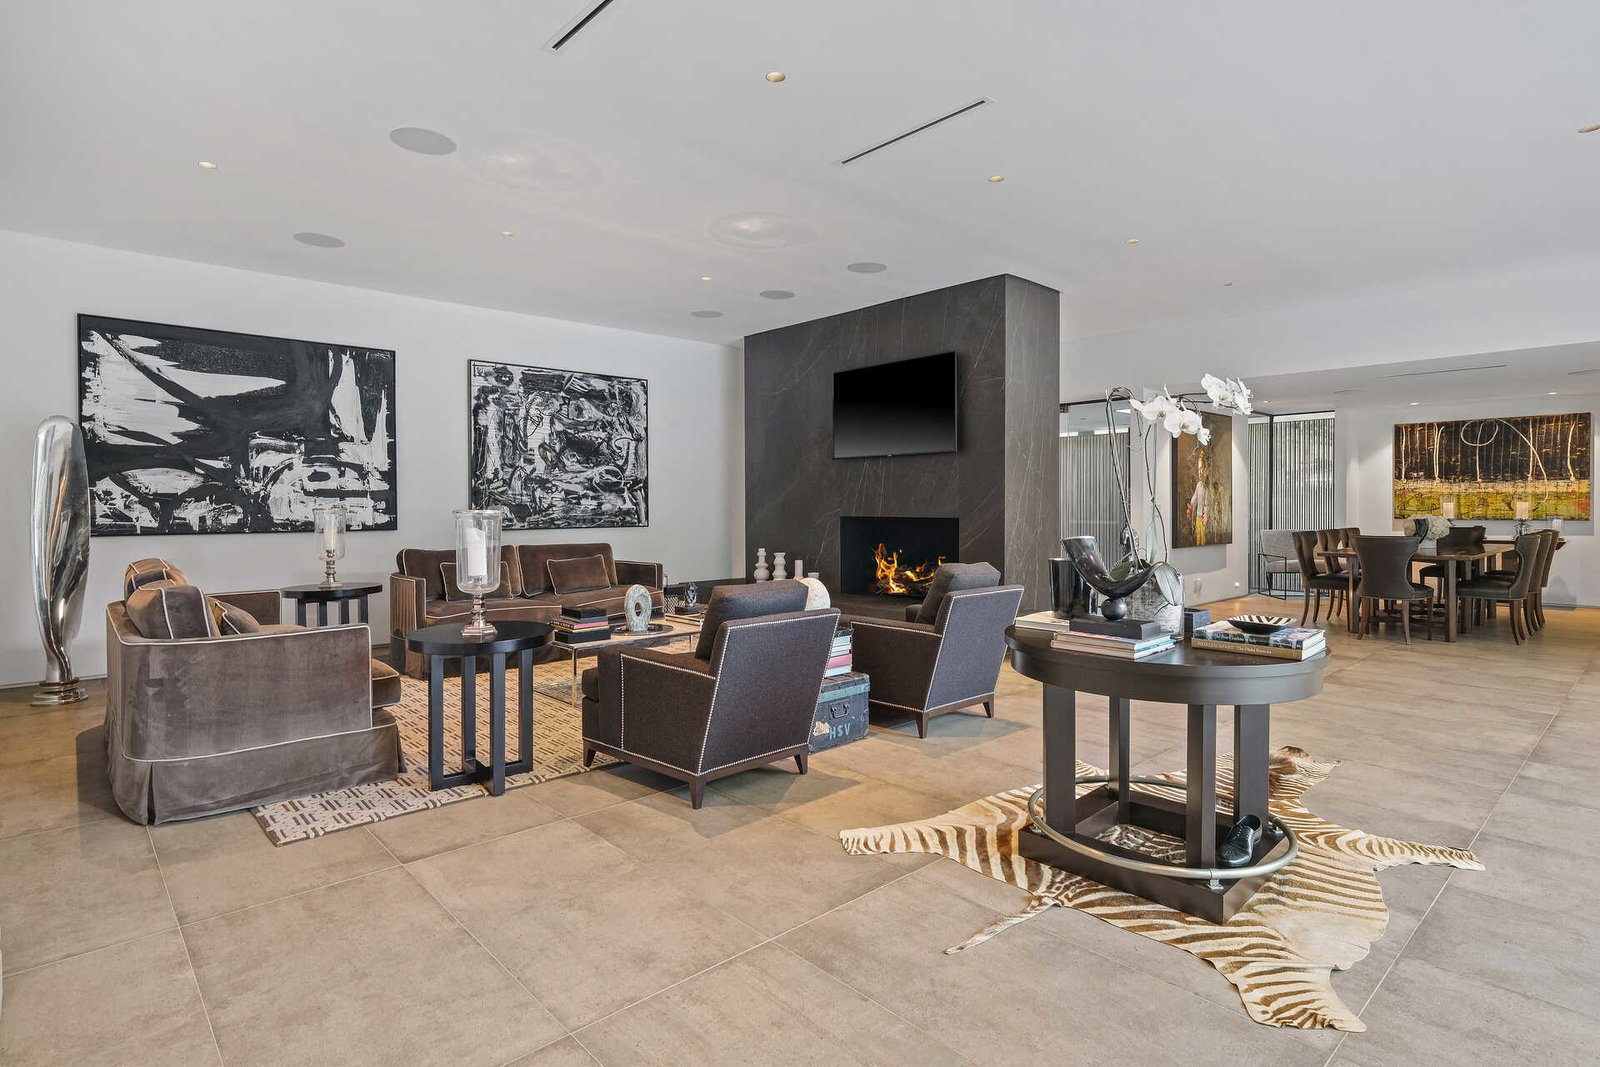 Living Room, Standard Layout Fireplace, Table, Chair, End Tables, Sofa, Cement Tile Floor, and Recessed Lighting  A Midcentury Modern Oasis in Bel Air